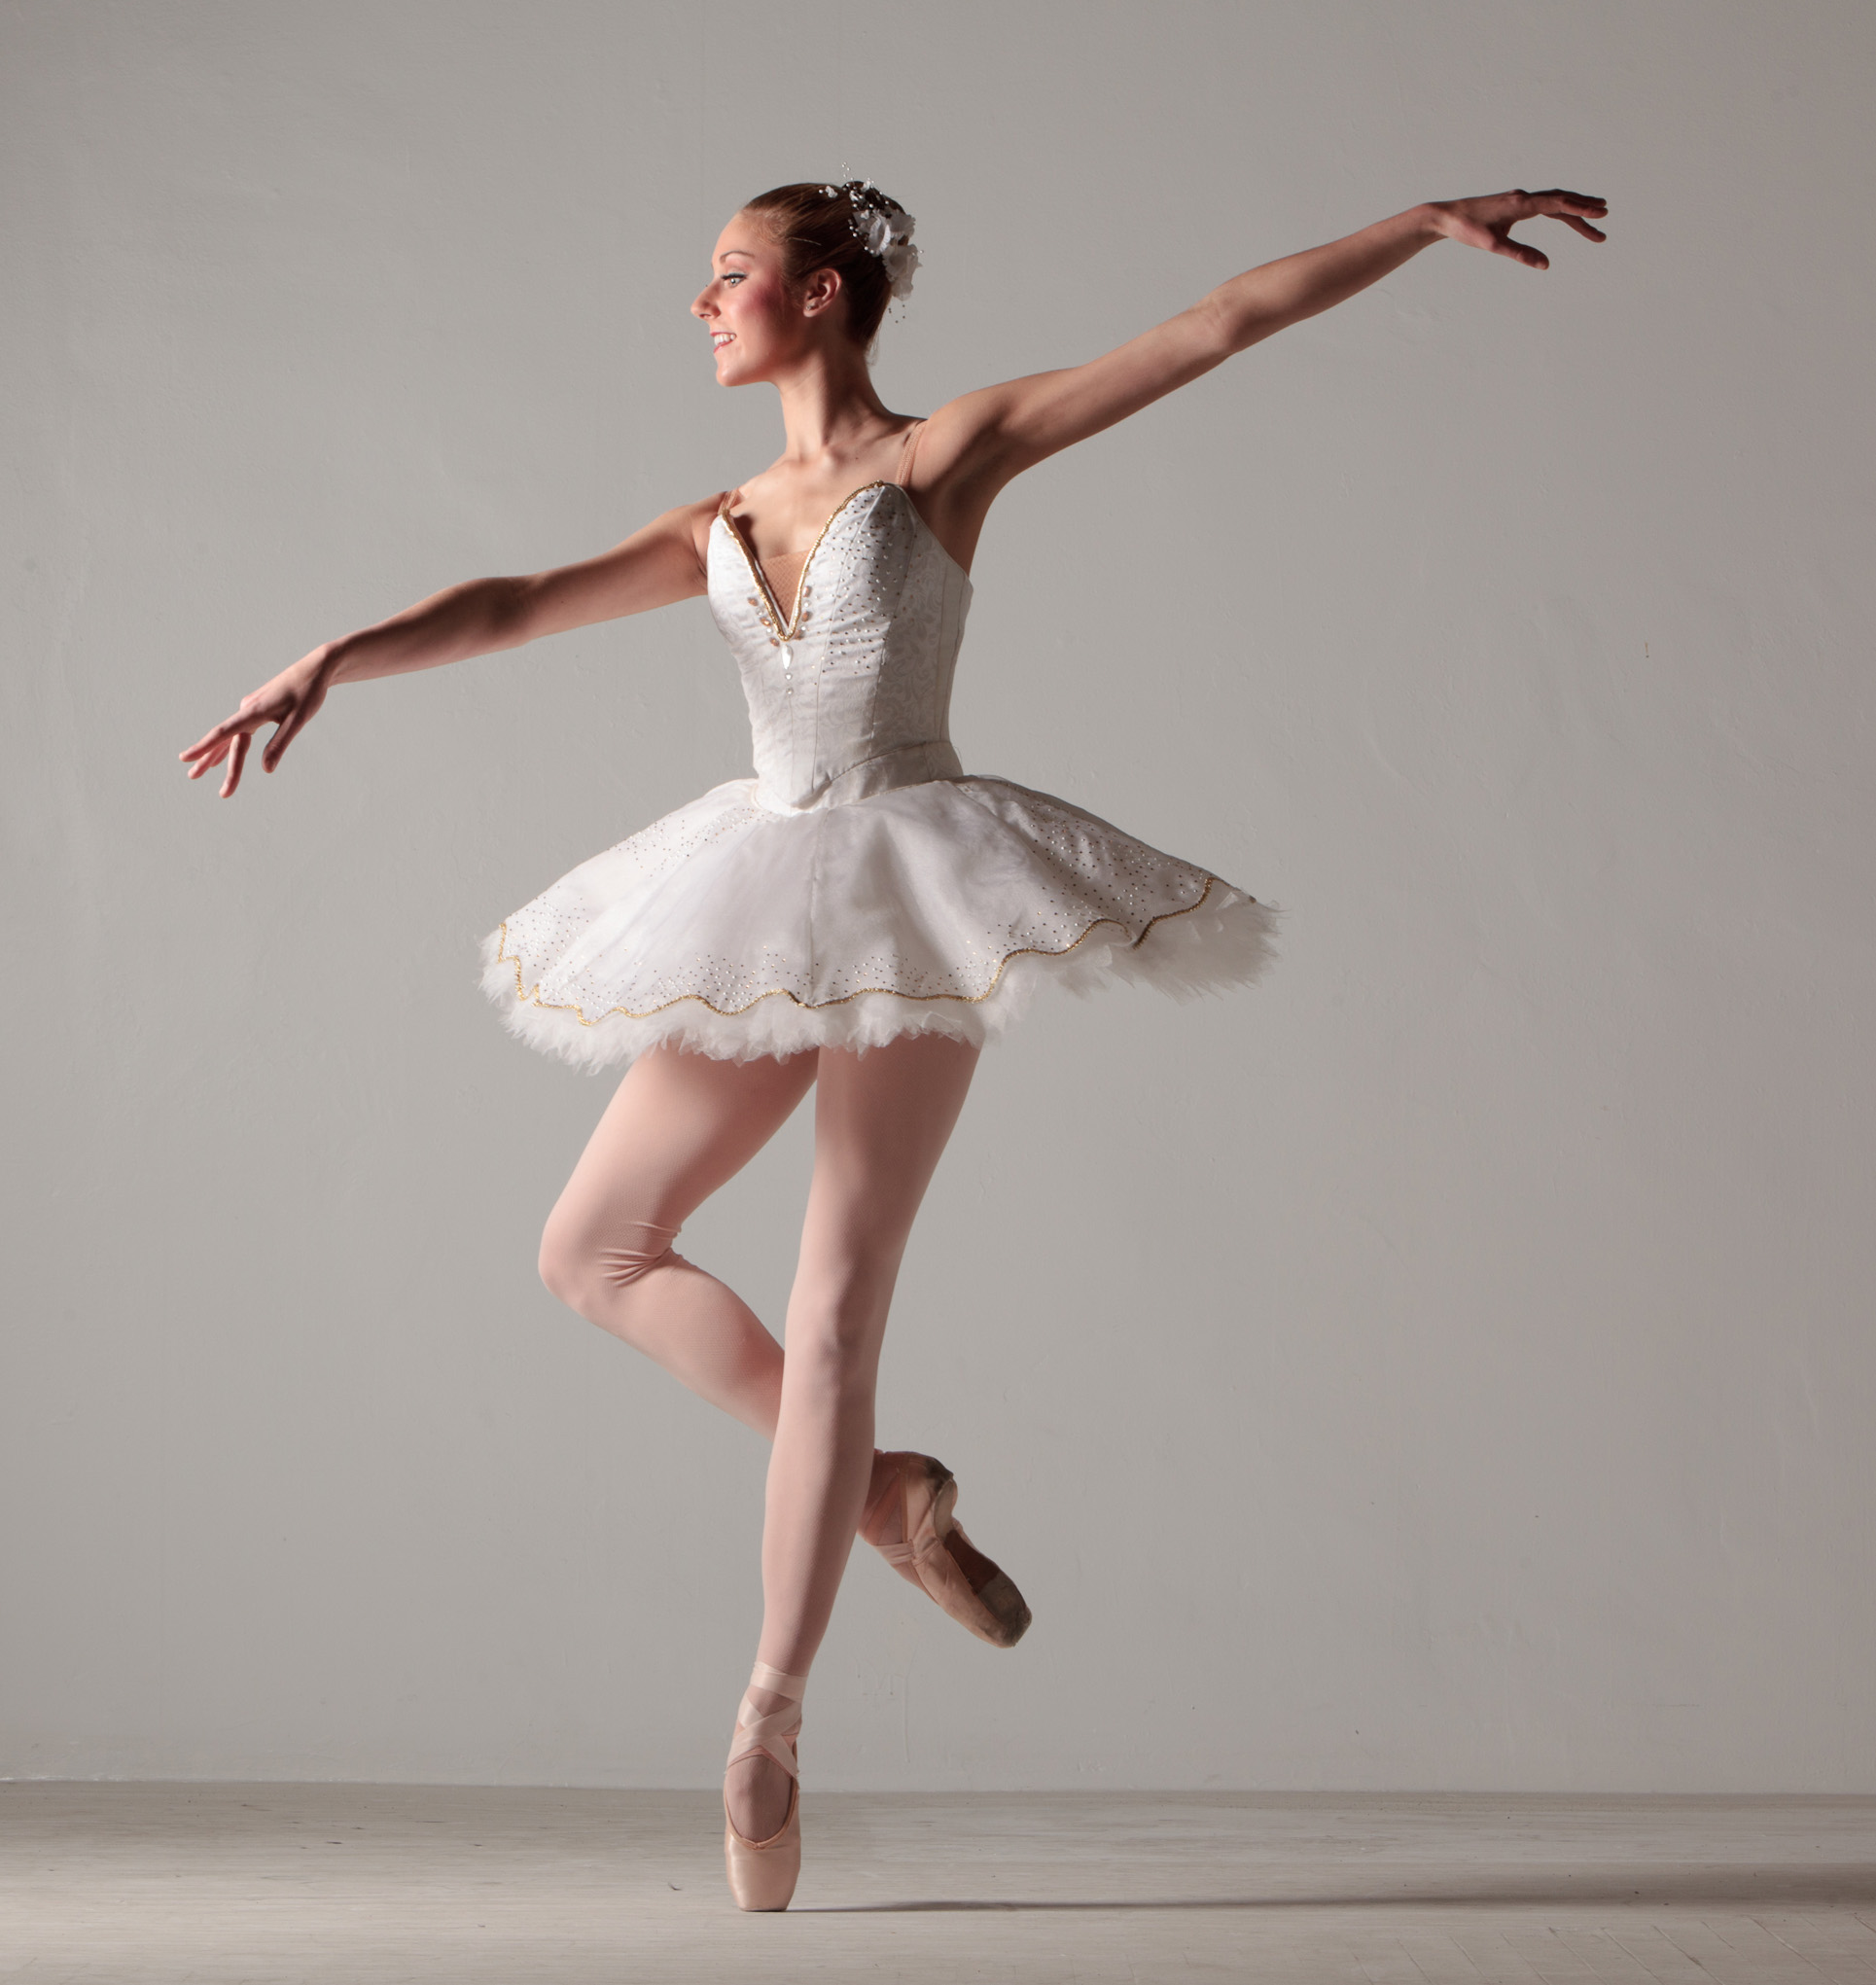 Ballet Dancer Training 122.95 Kb